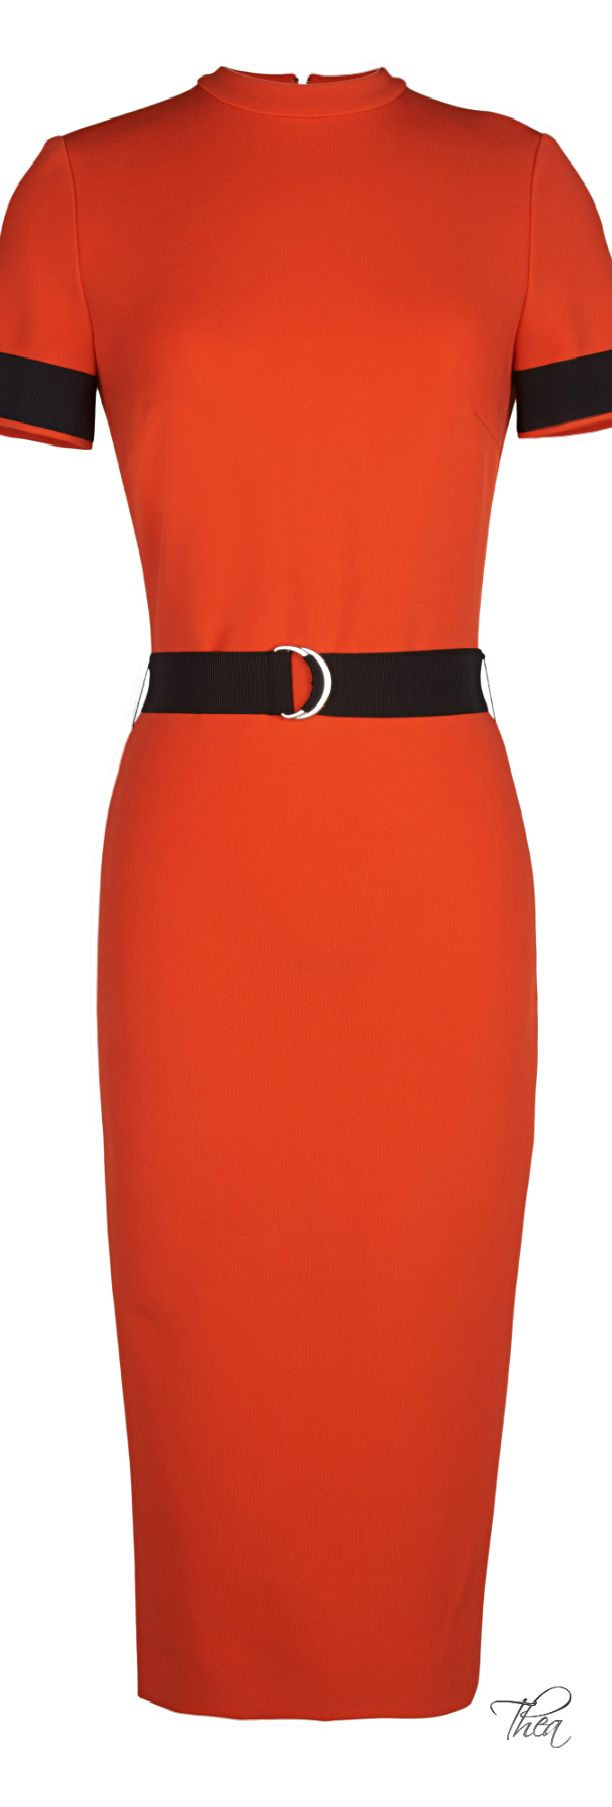 MUGLER ● Resort 2015, Milano Neon Orange Dress